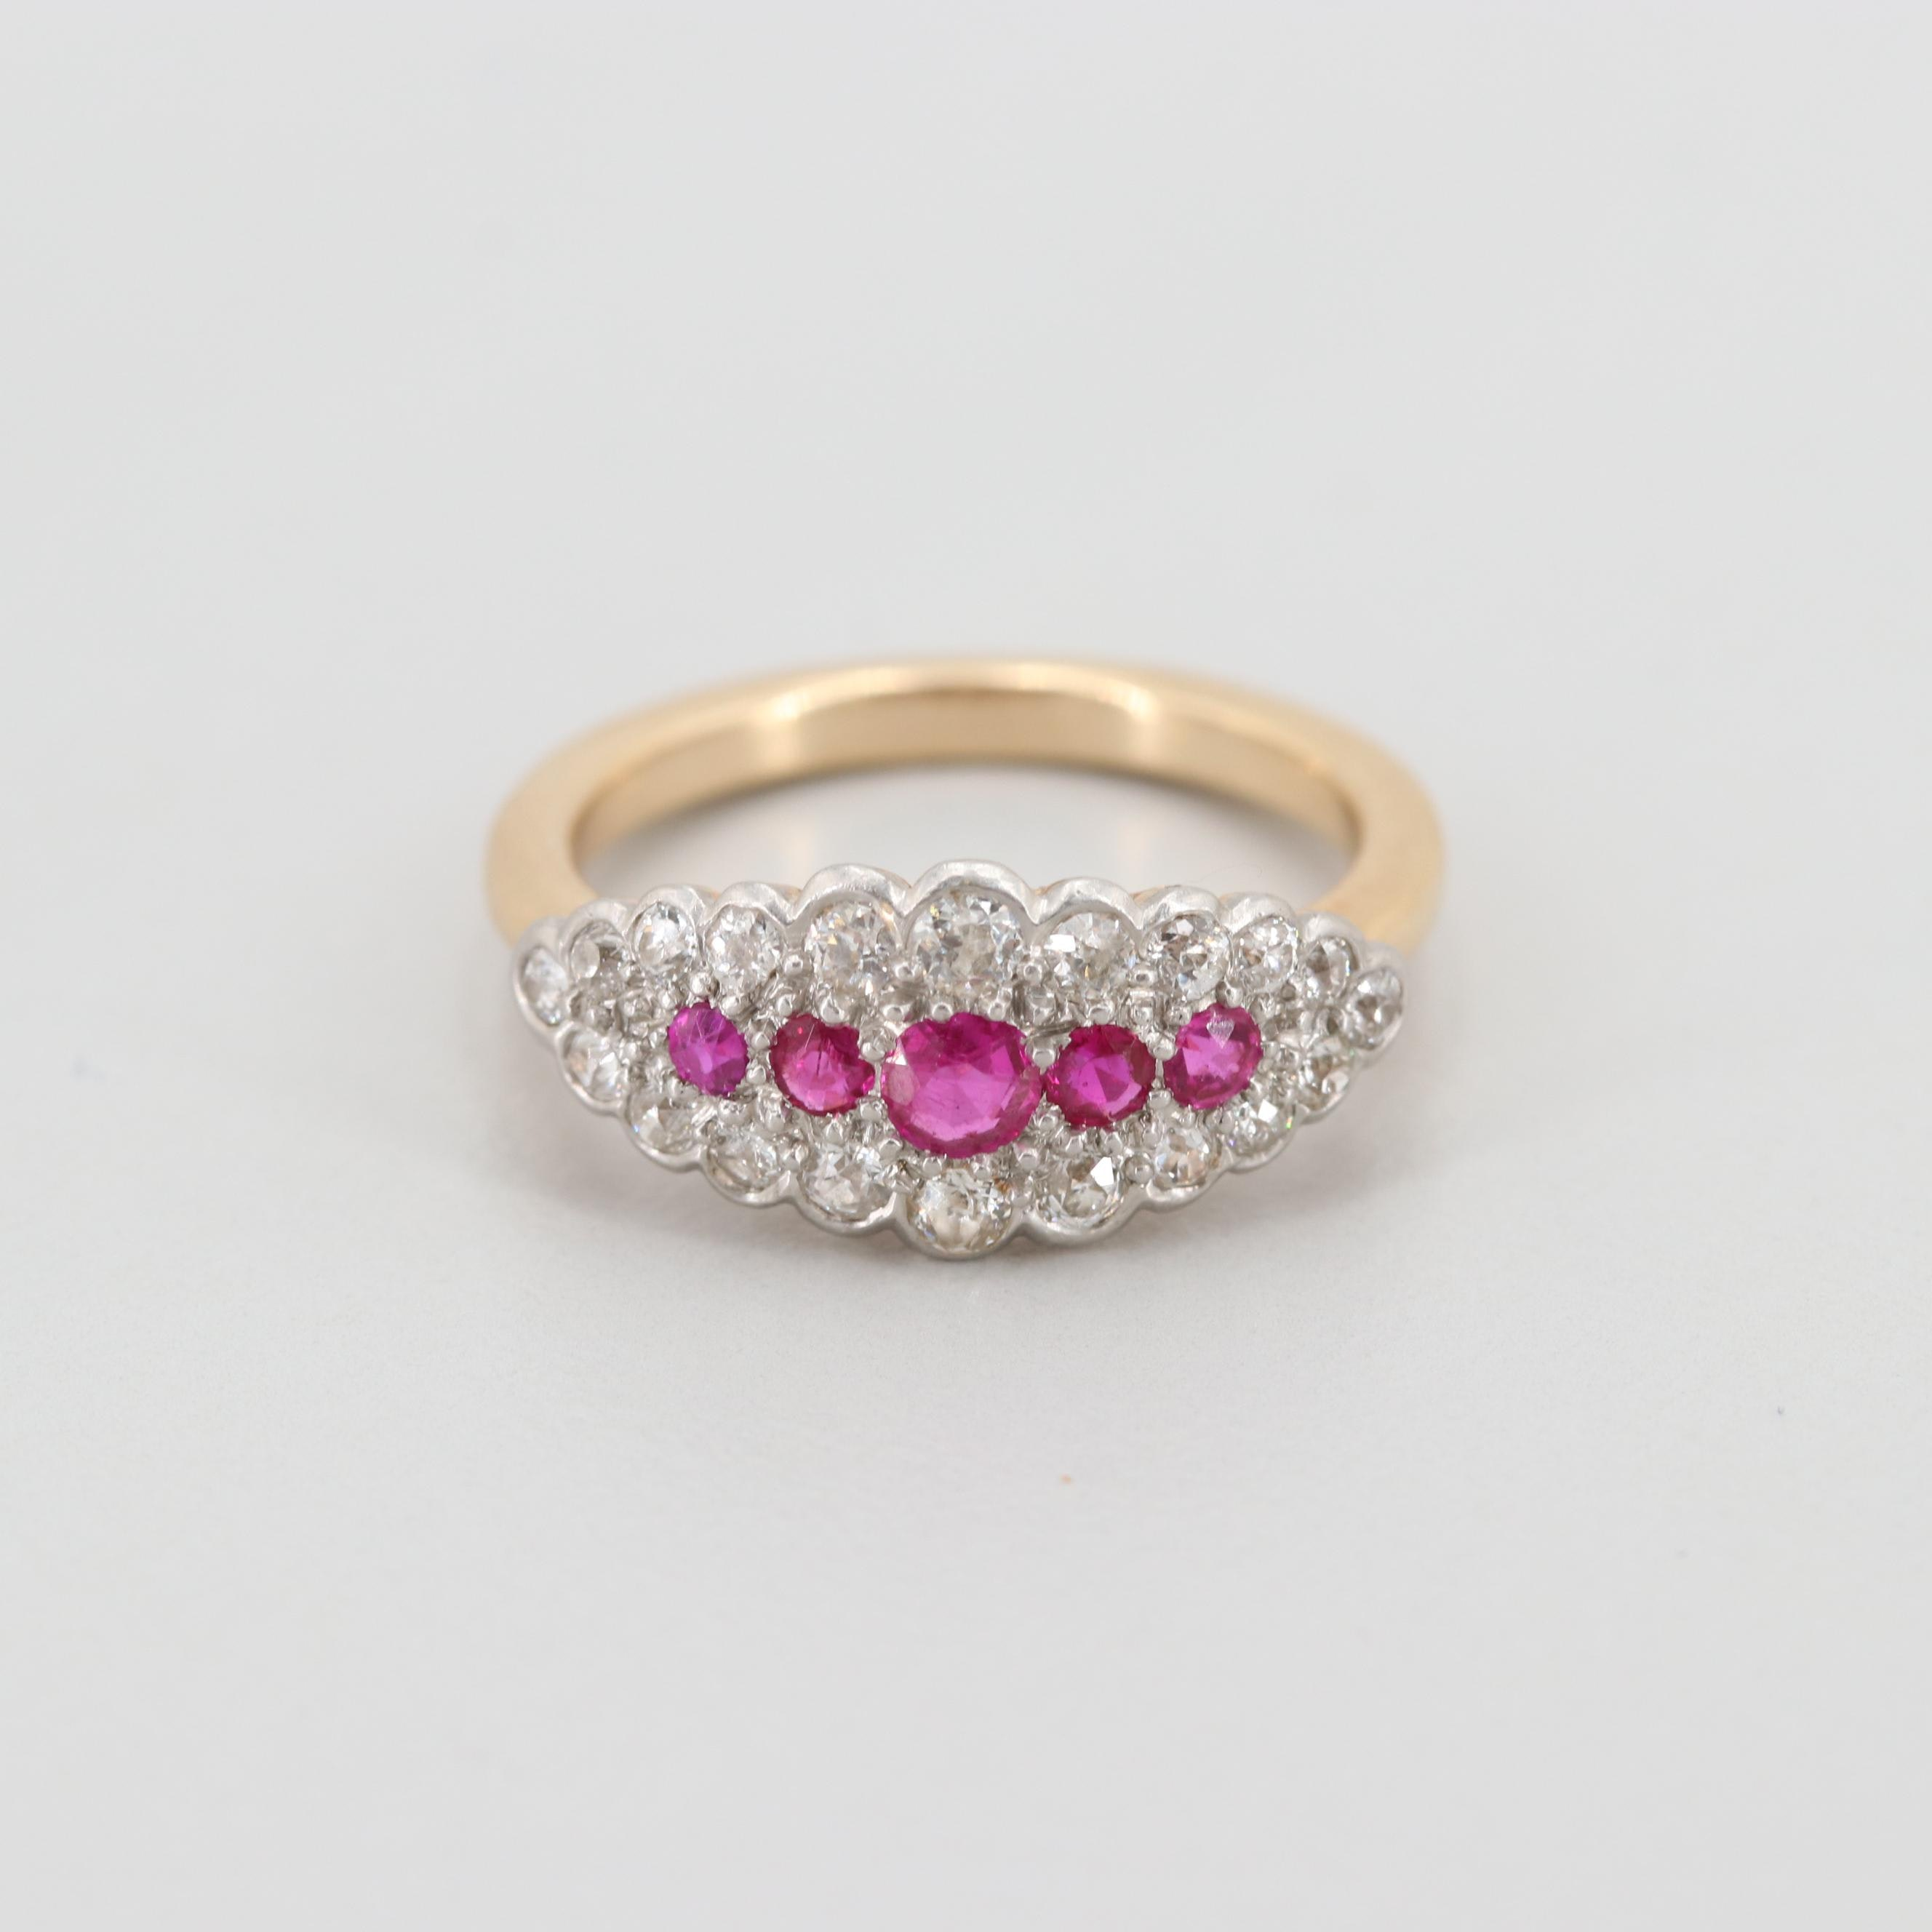 Vintage 14K Yellow Gold Ruby and Diamond Ring with Platinum Top